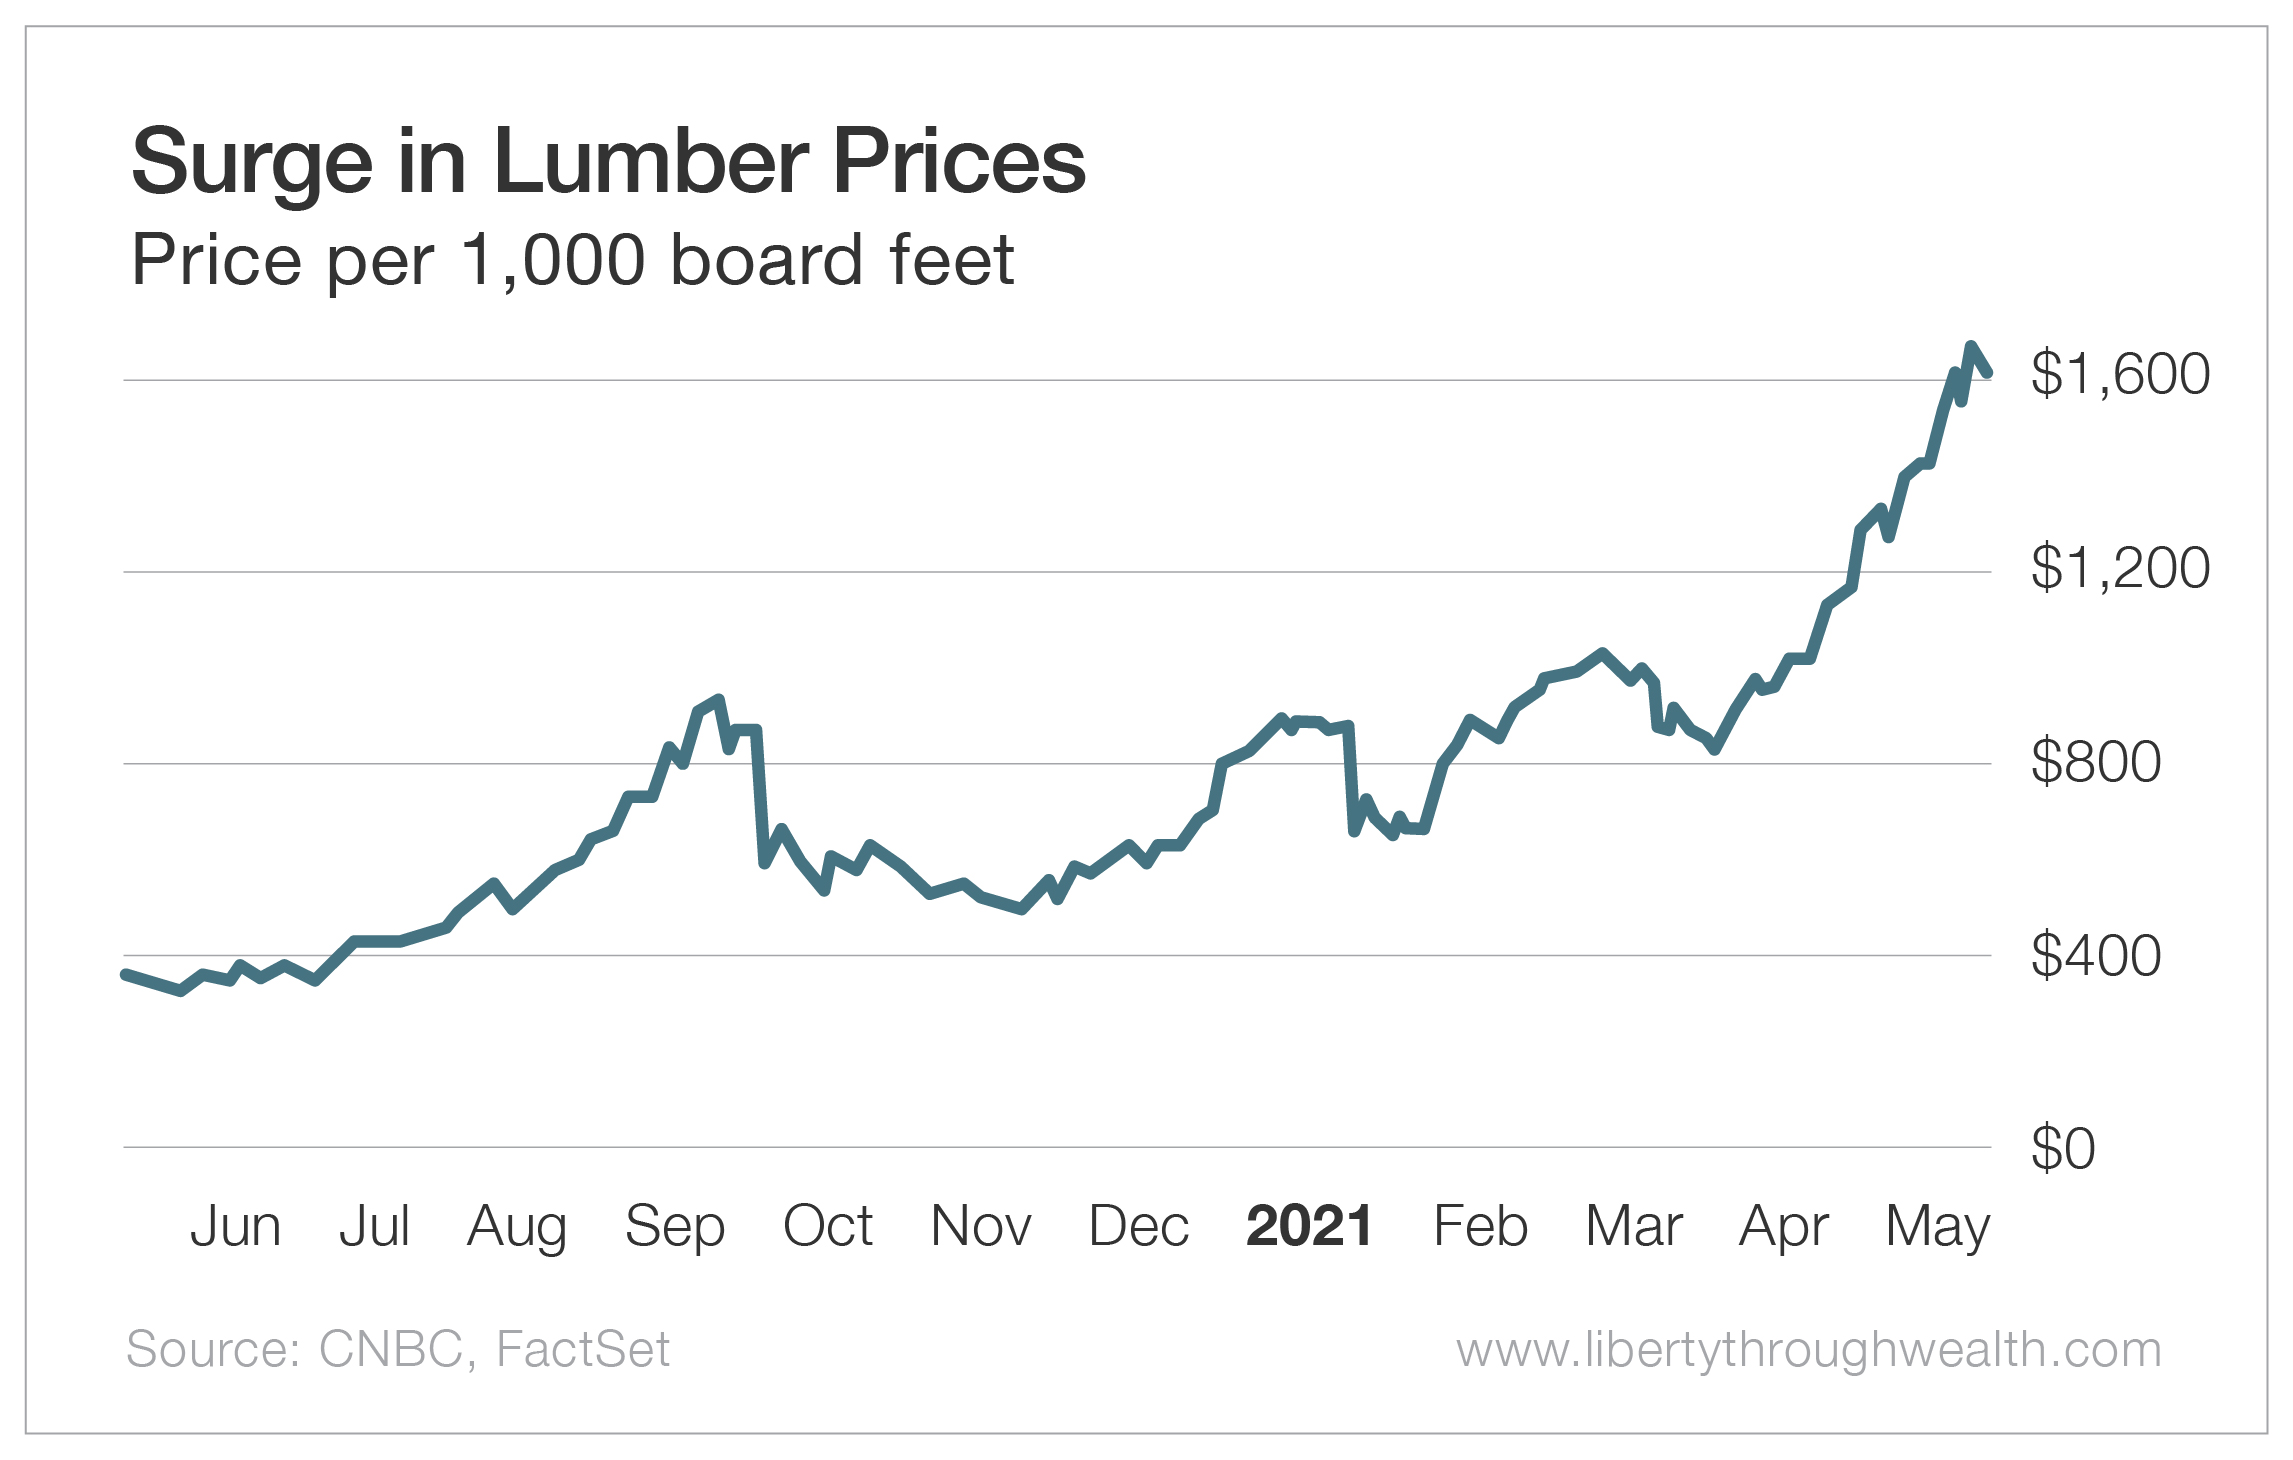 Surge in Lumber Prices